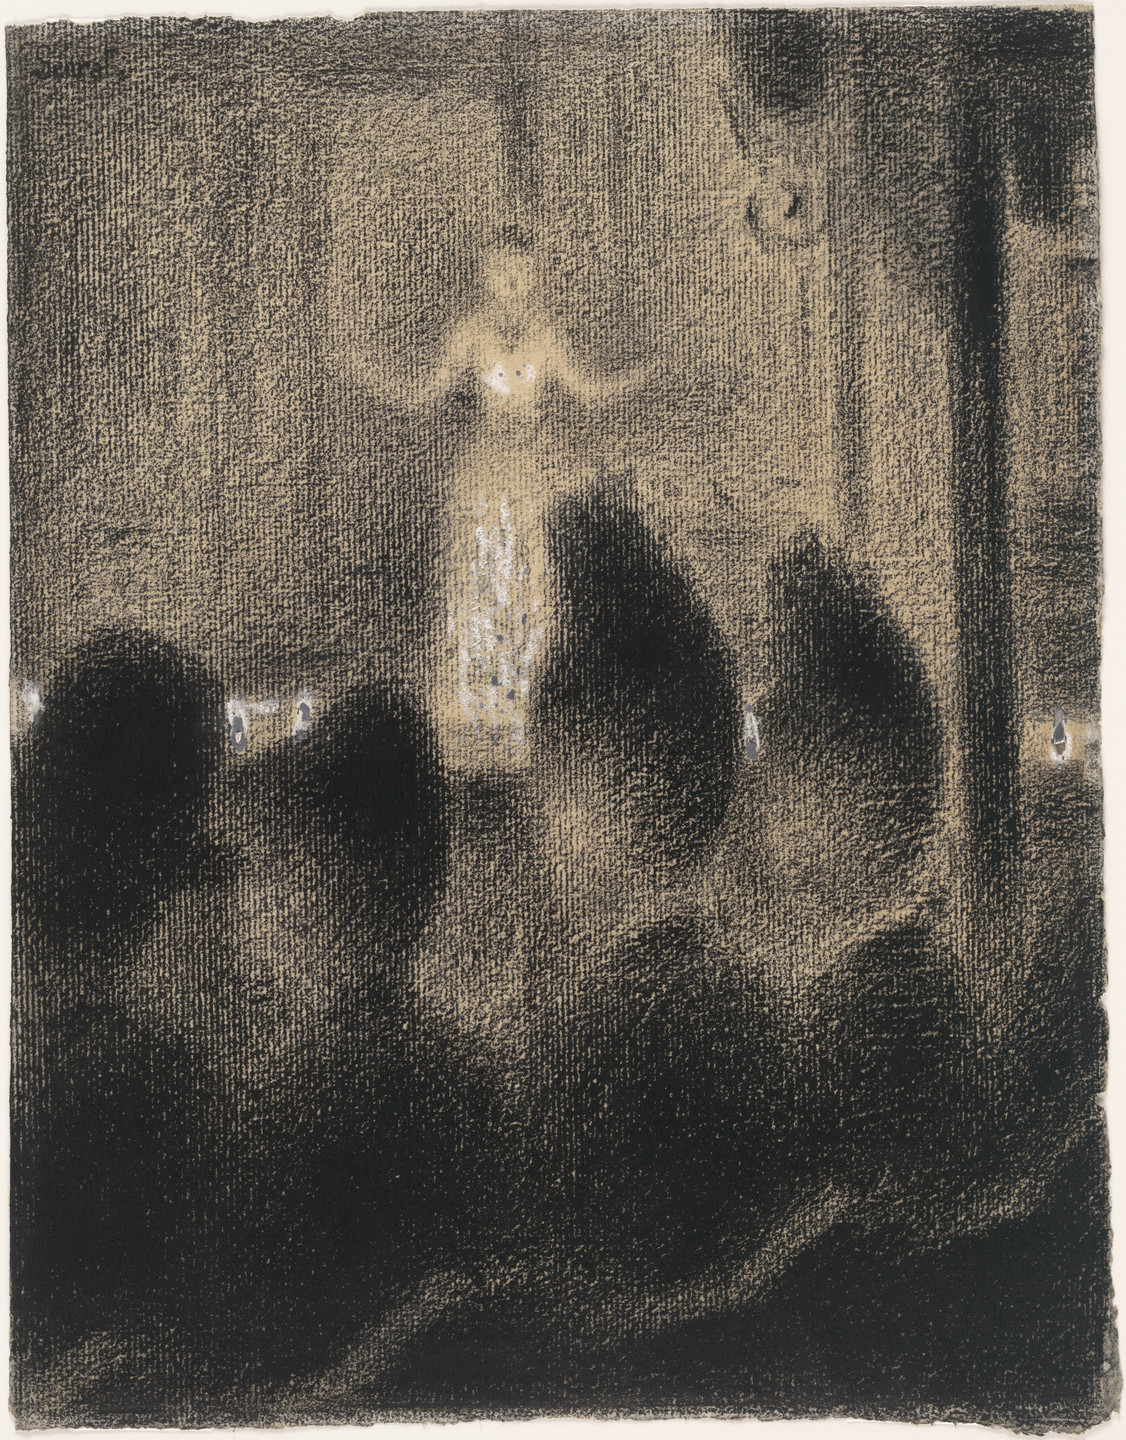 Georges-Pierre Seurat. At the Concert Européen (Au Concert Européen). c. 1886–88